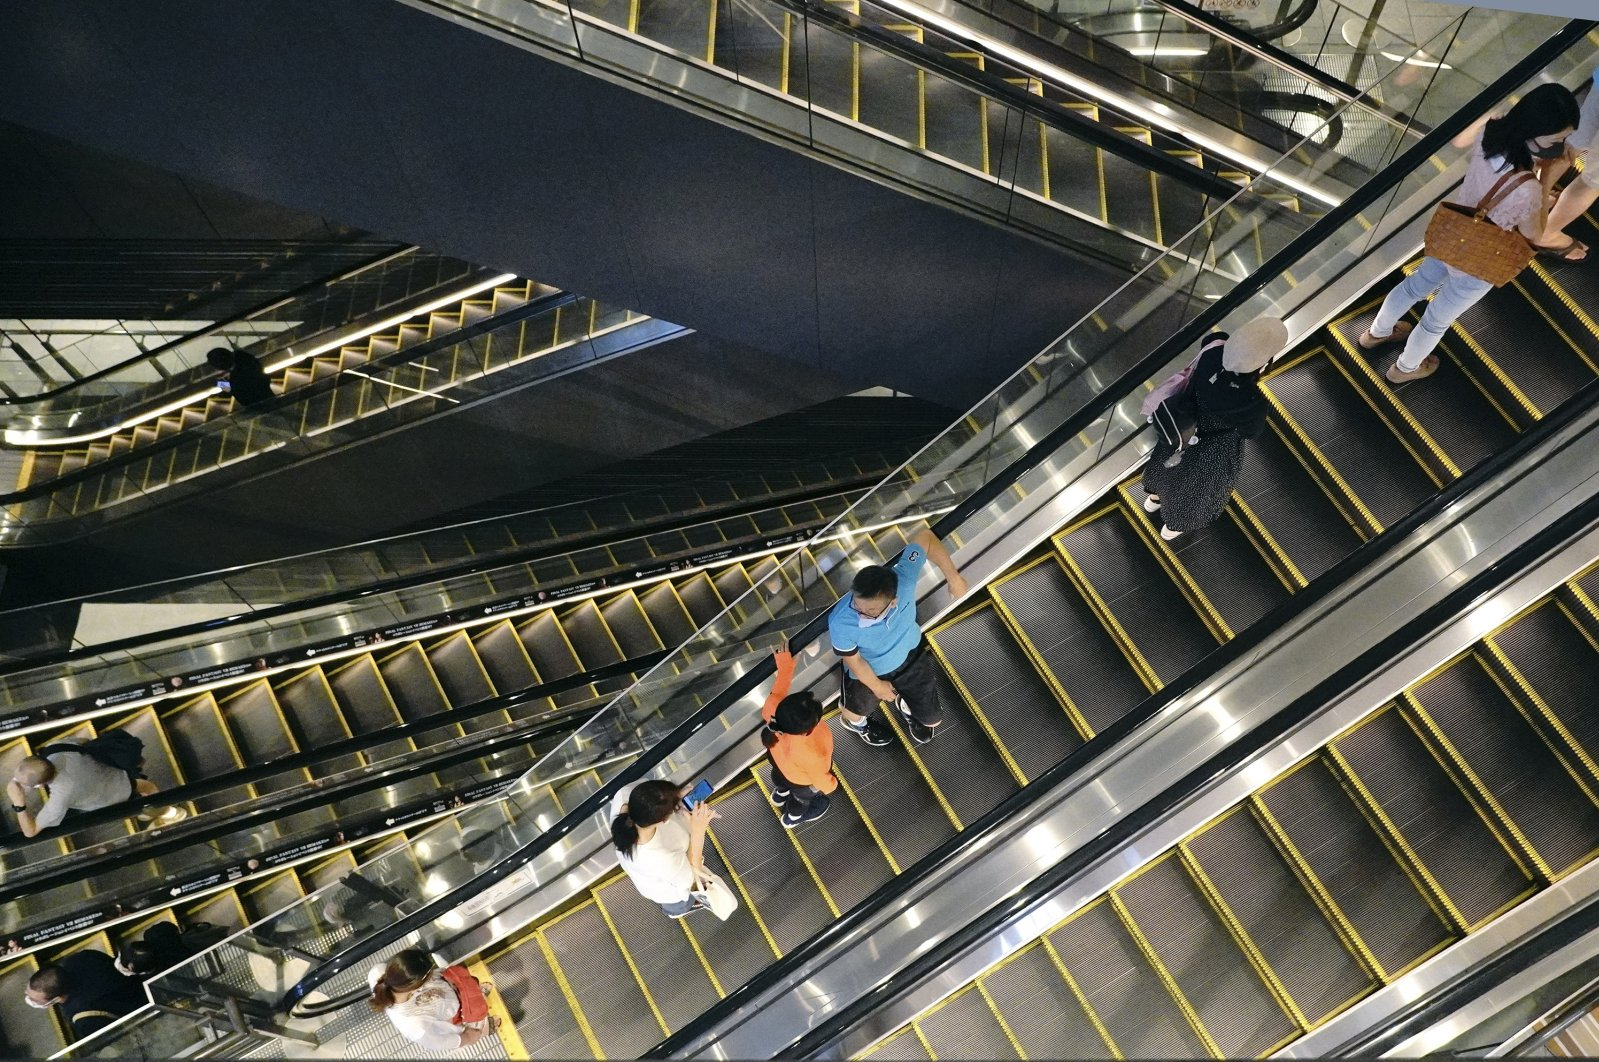 People take elevators at a shopping building in Tokyo on Aug. 24, 2020. (AP Photo)